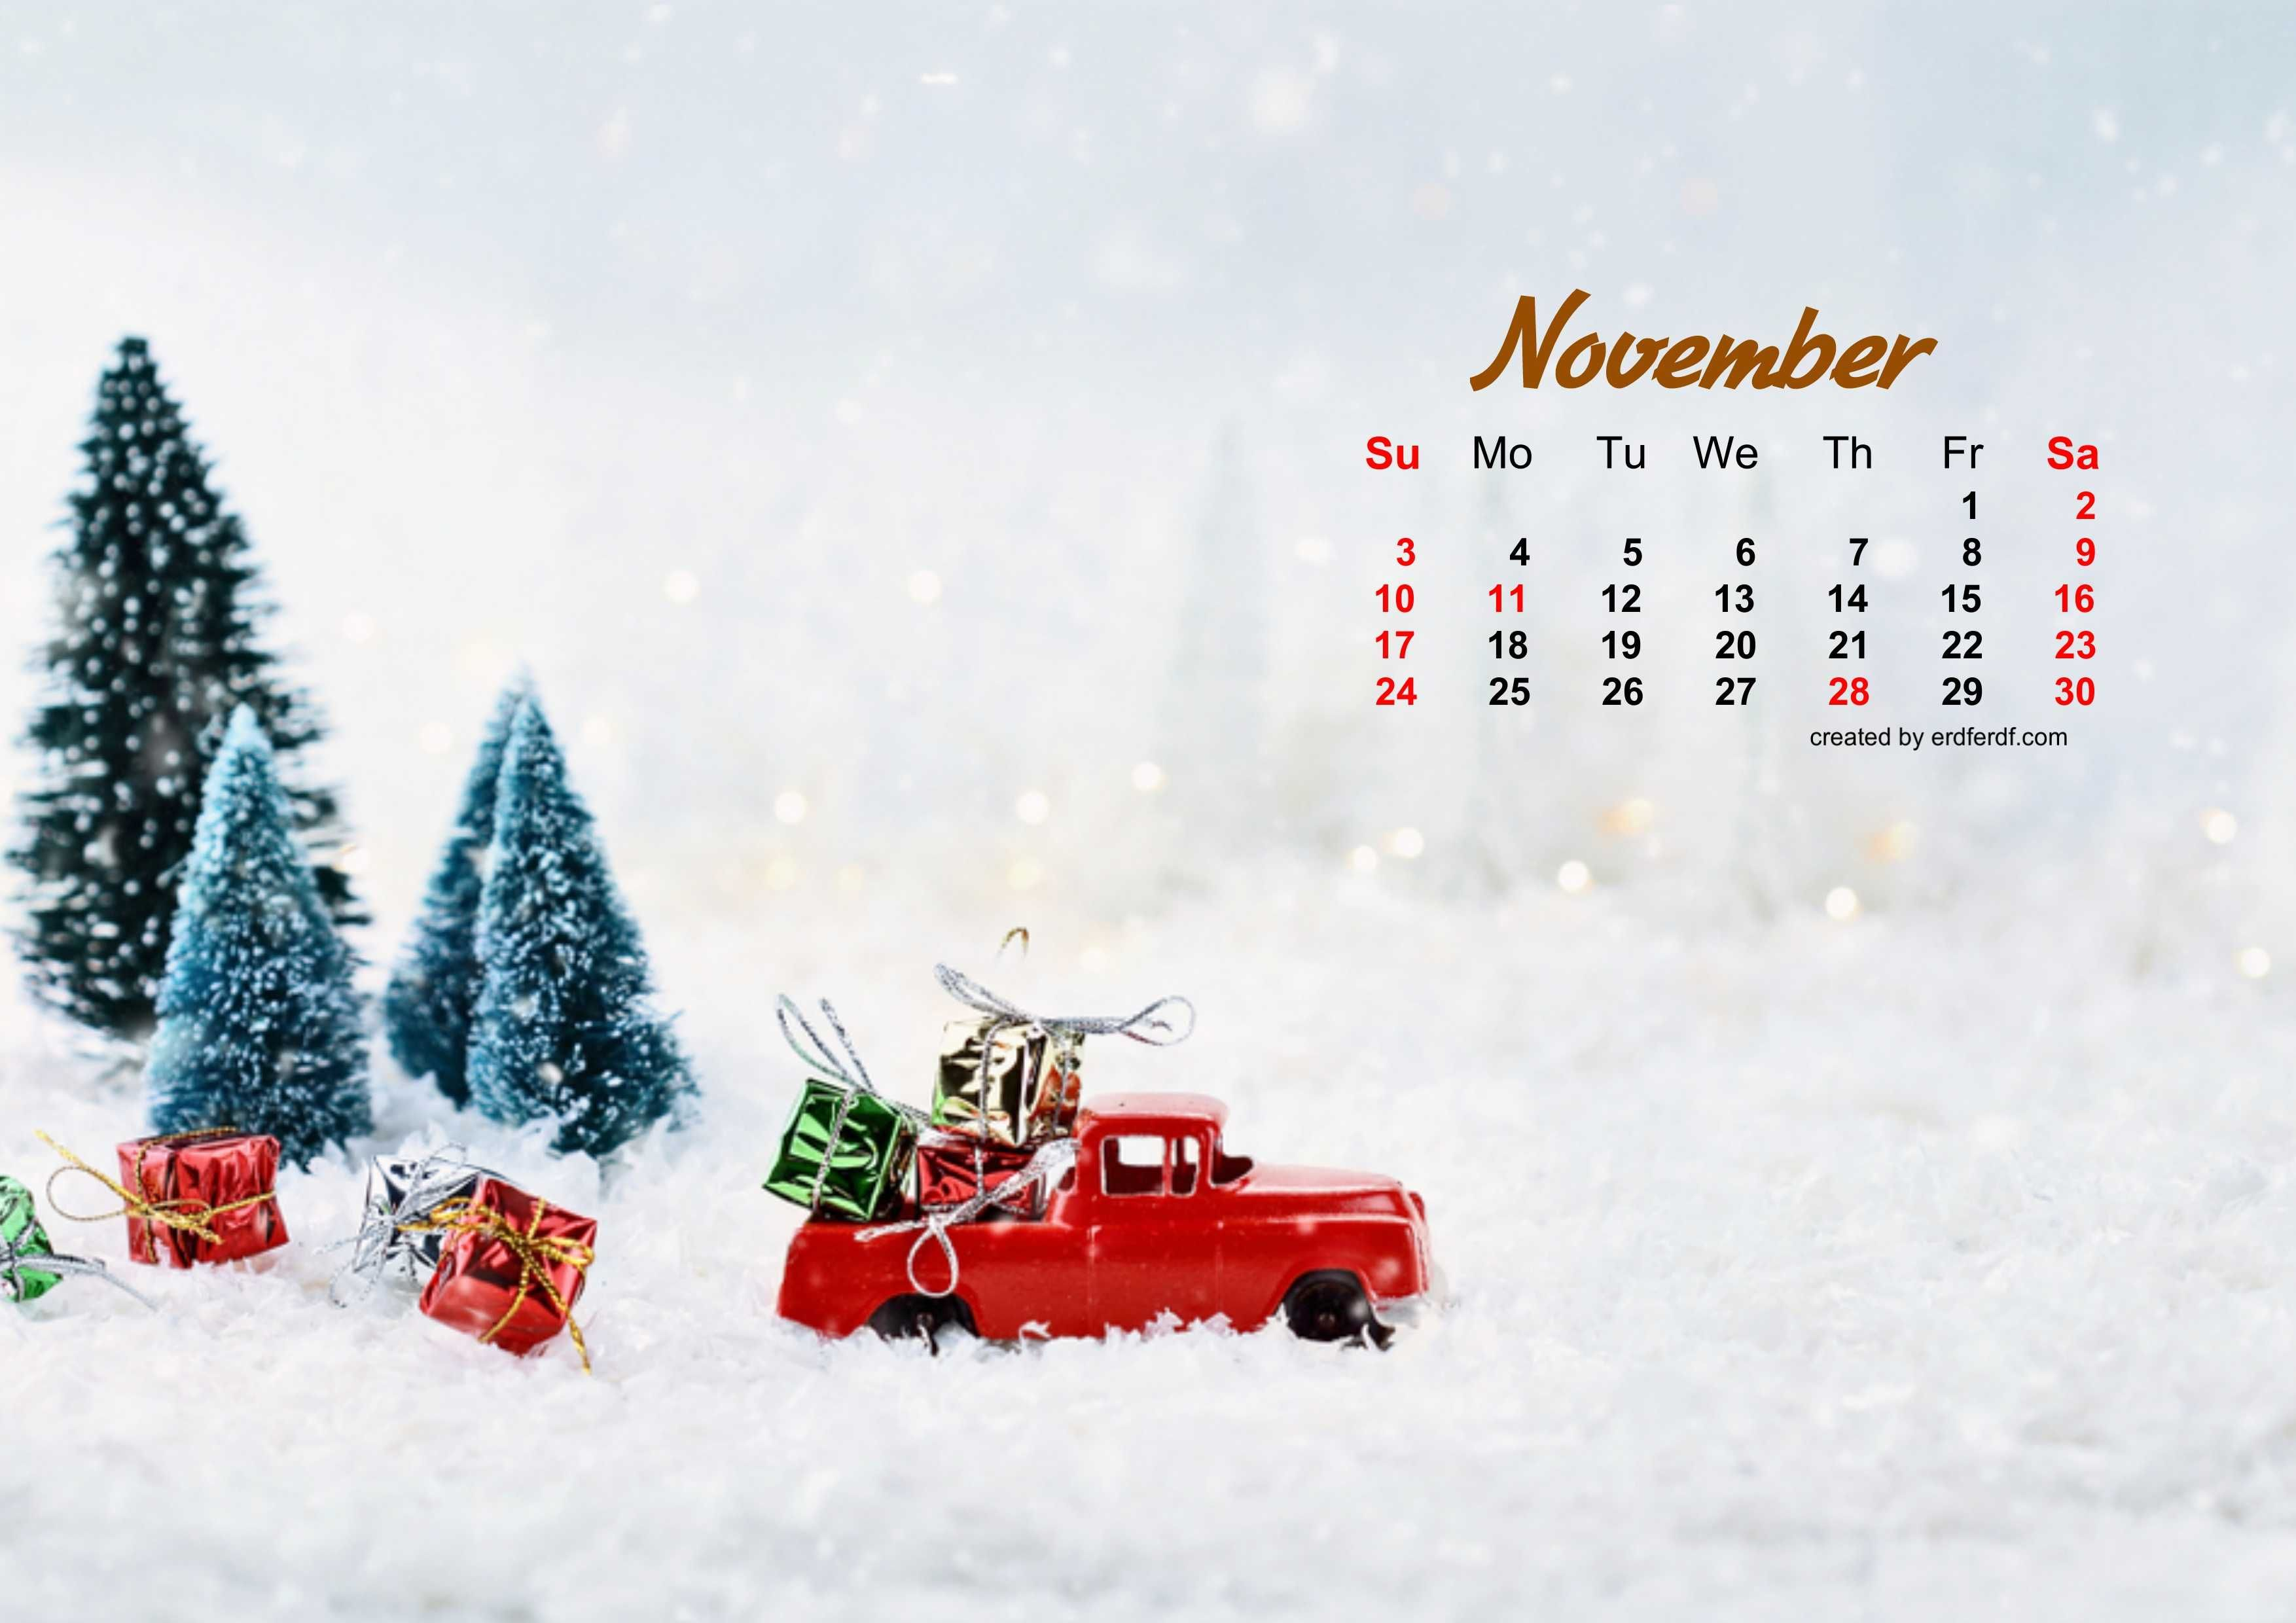 Mini Car December 2019 Desktop Calendar Wallpaper